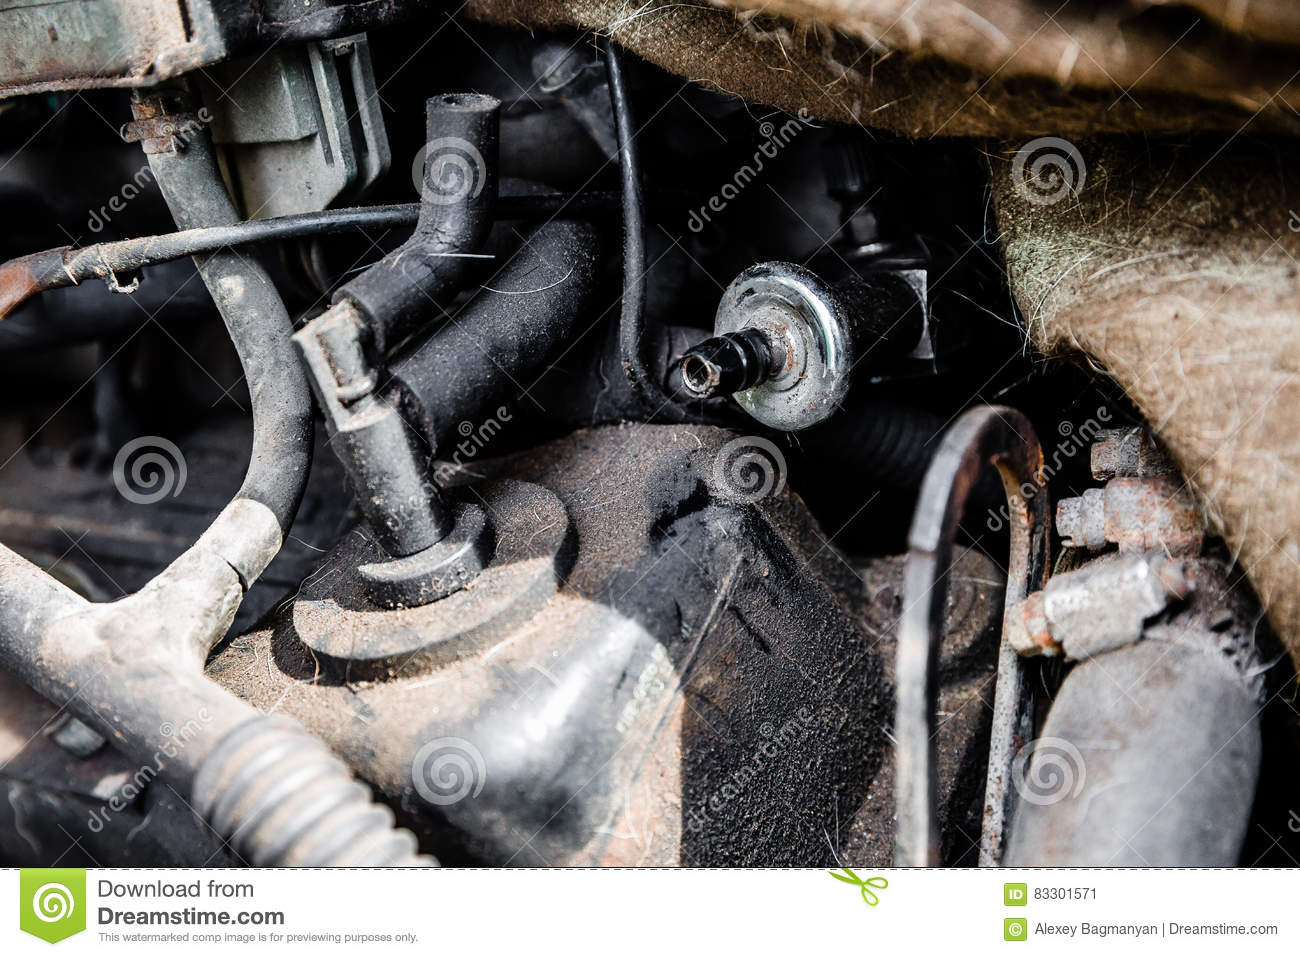 Car internal parts texture stock image. Image of damaged - 83301571